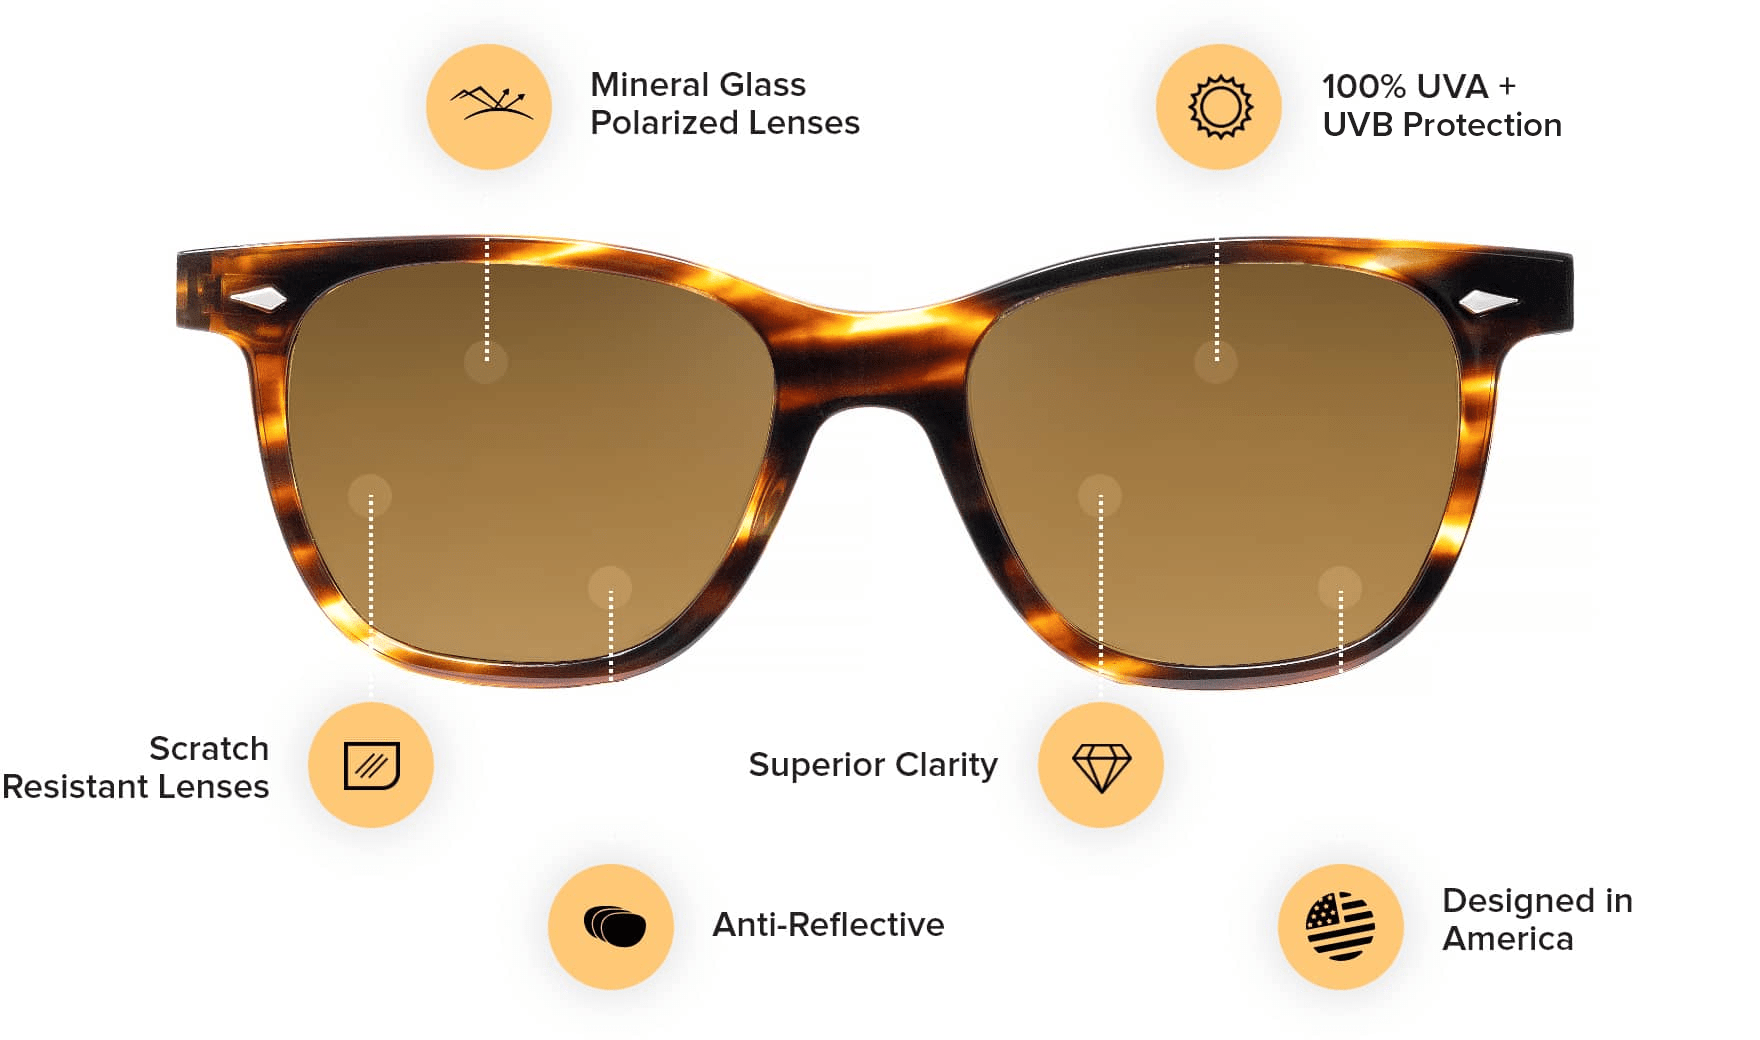 Sunglasses showing the features: Scratch resistant lenses, Anti-Reflective, Mineral Glass Polarized Lenses, 100% UVA + UVB Protection, Superior Clarity, Designed in America